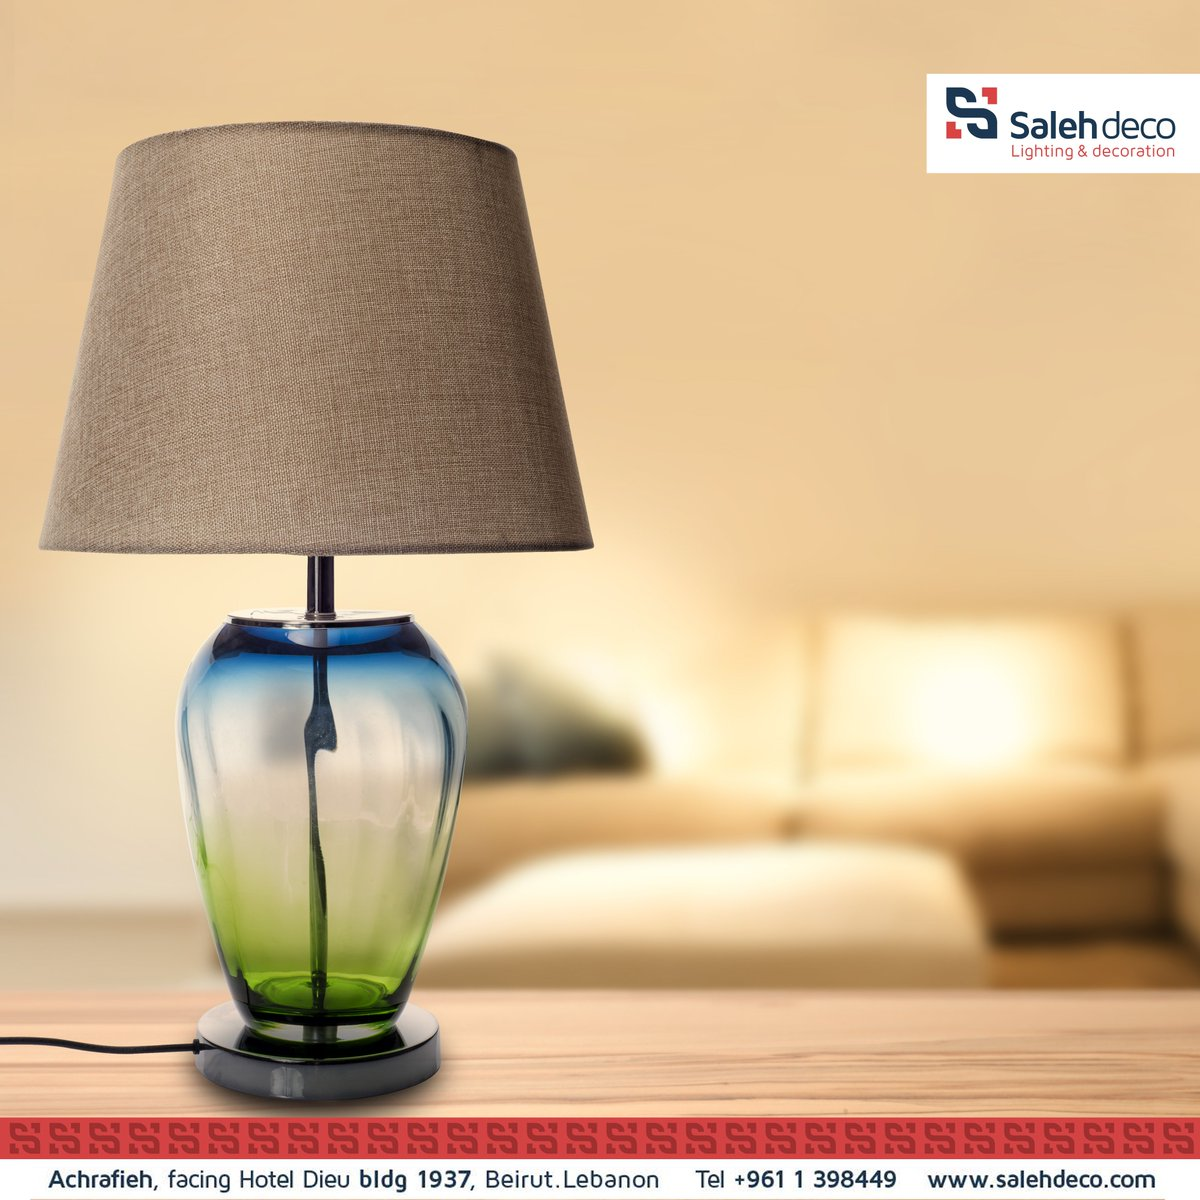 Bring #warmth and #ambiance to your #livingroom with this beautiful #tablelamp. available at #SalehDeco showroom https://t.co/JOK7b1r0UP